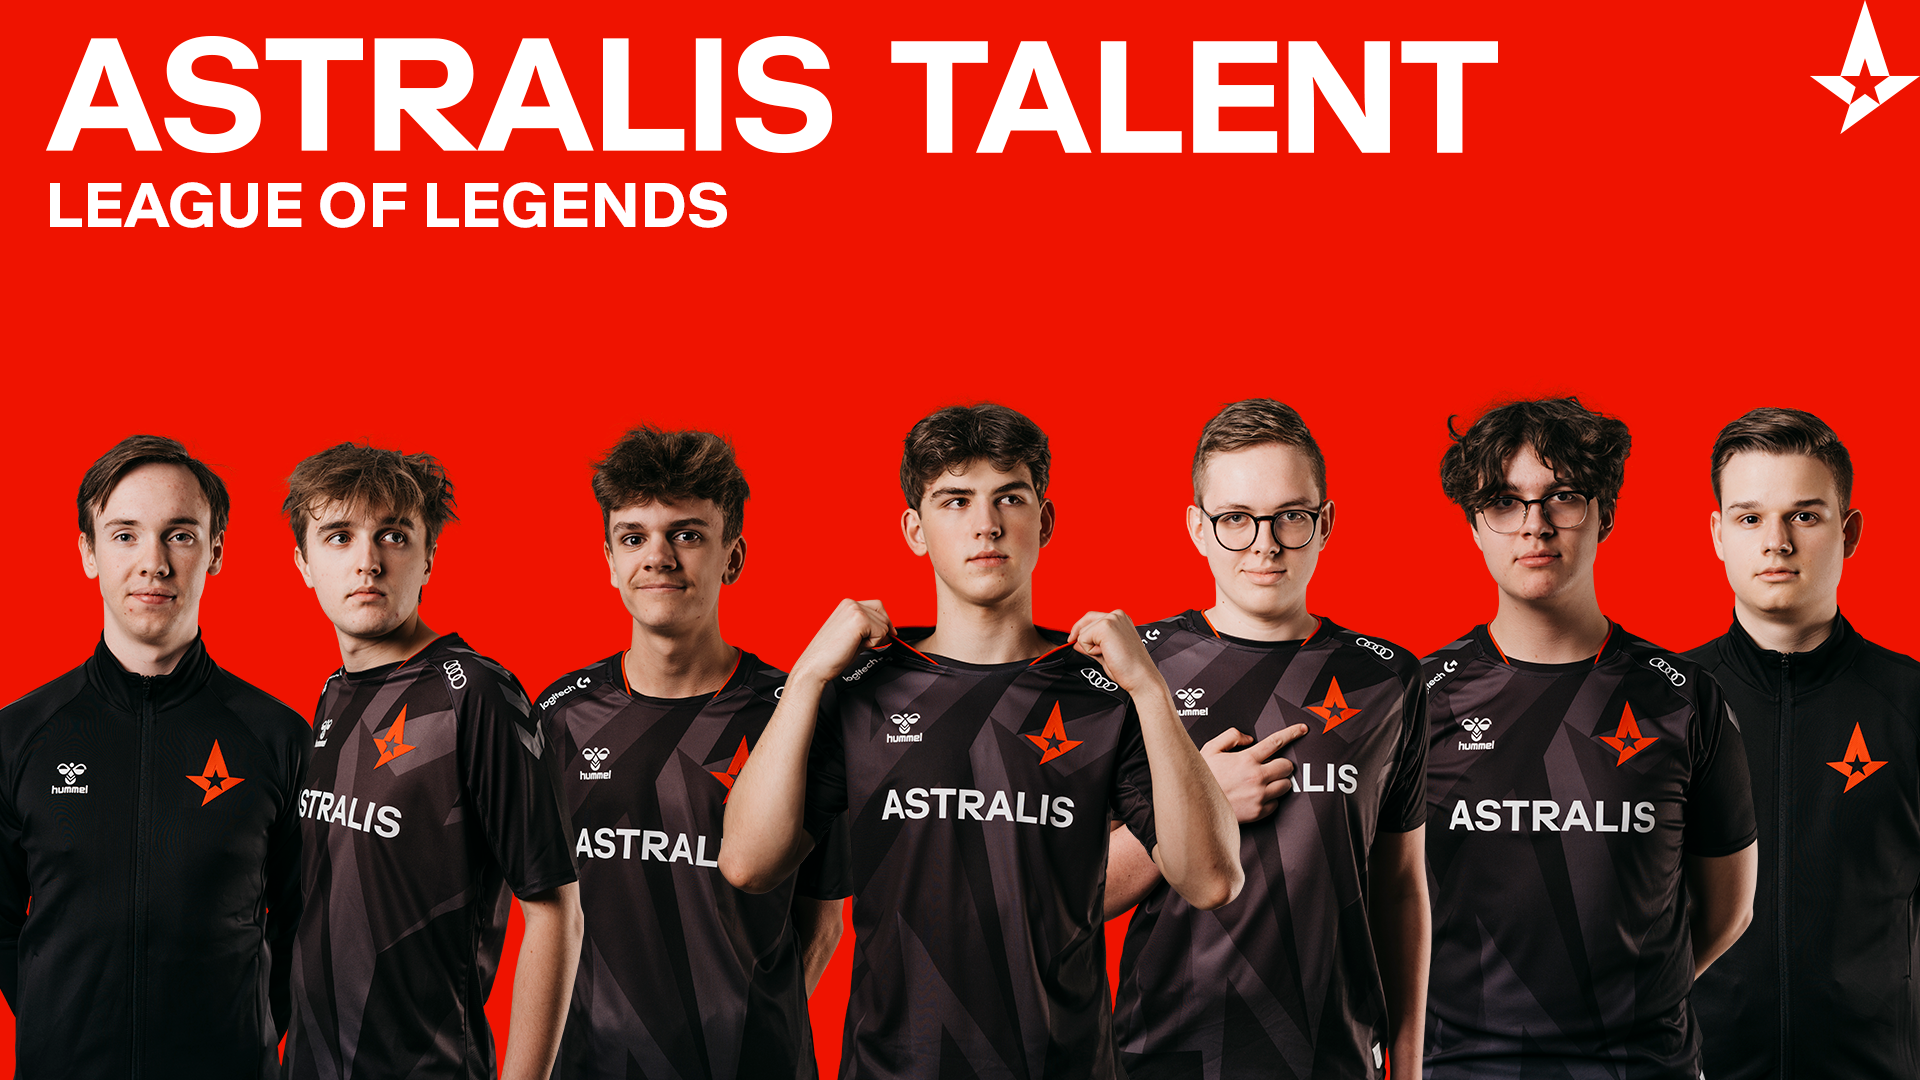 Astralis Talent League Of Legends Awarded For Strong Performance